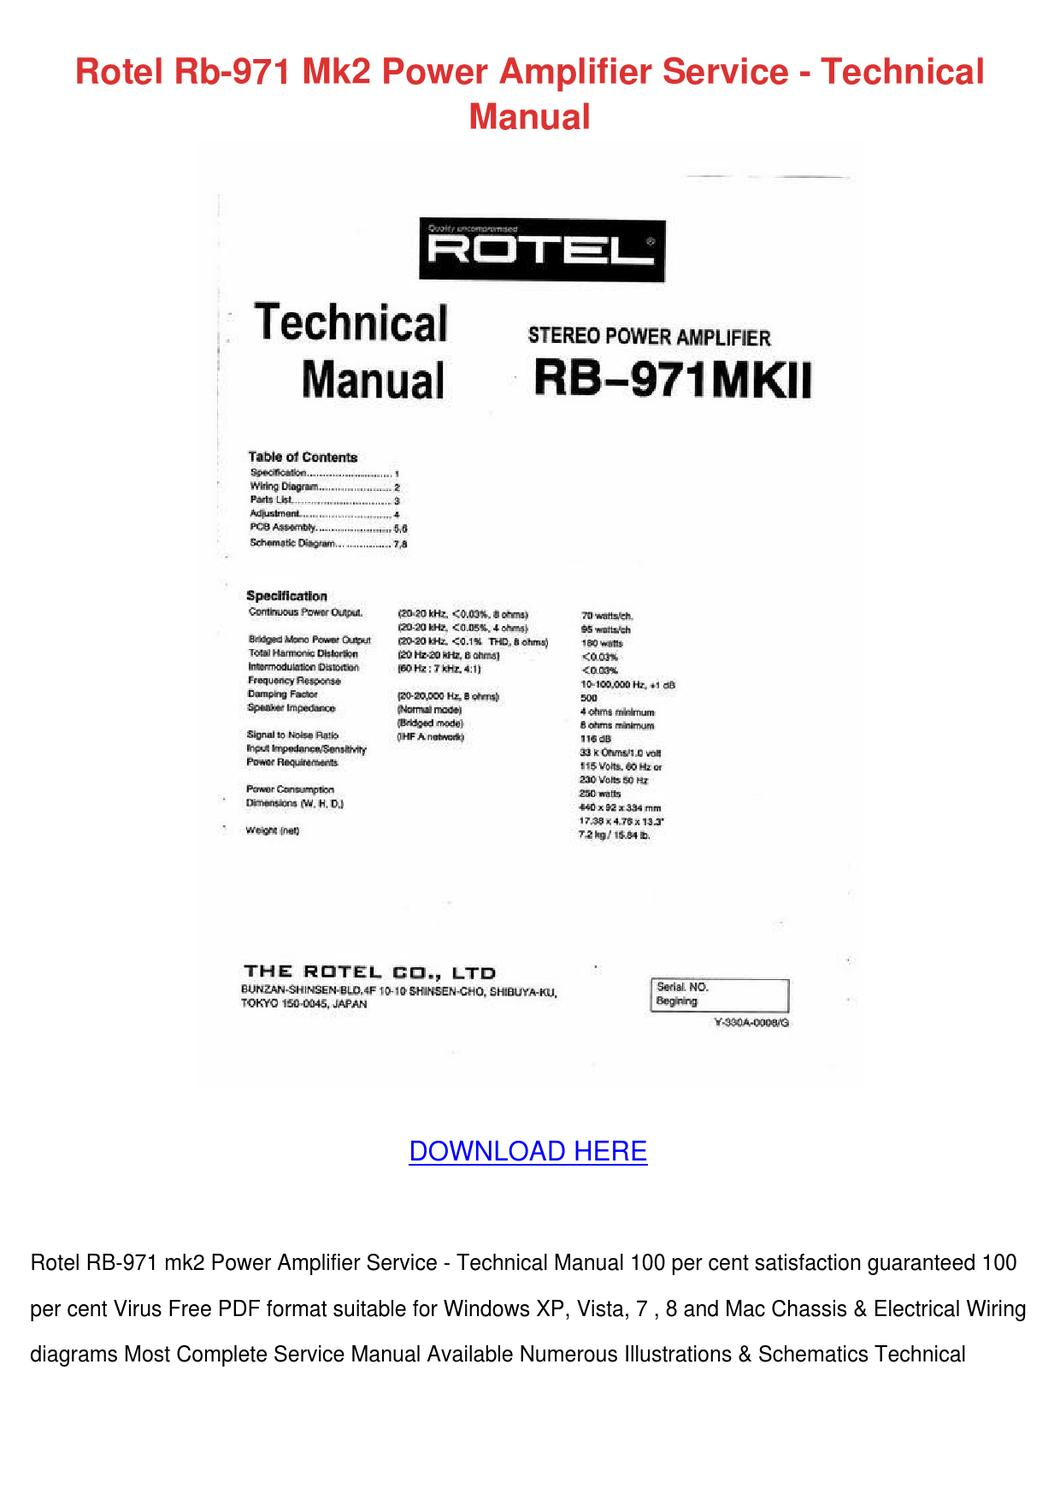 Rotel Rb 971 Mk2 Power Amplifier Service Tech by WillardTrout - issuu